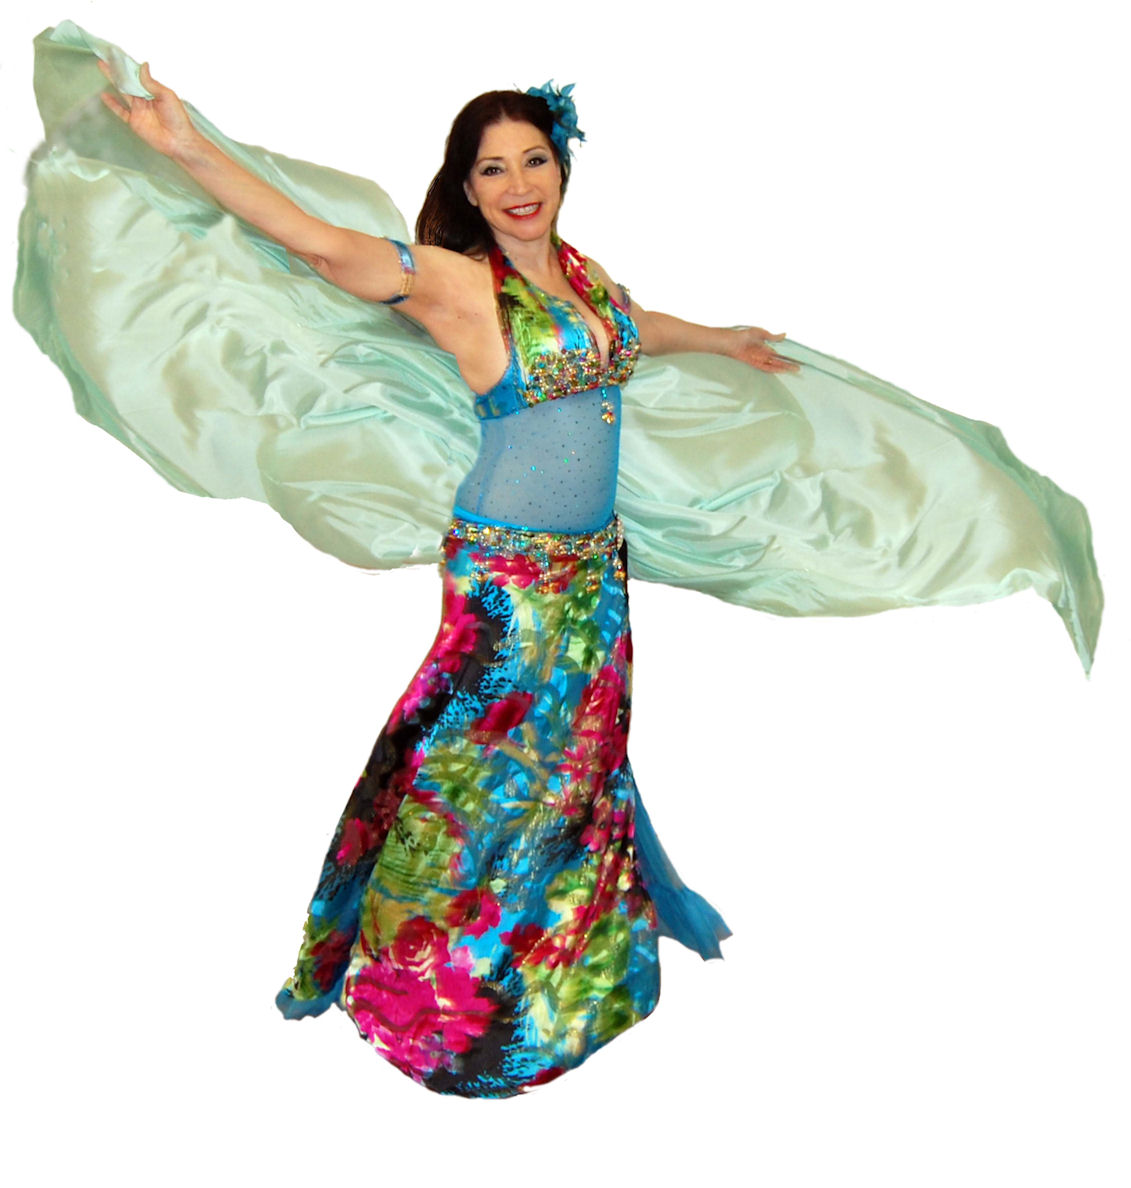 Habiba in multi-colored cabaret costume with mint green silk veil.